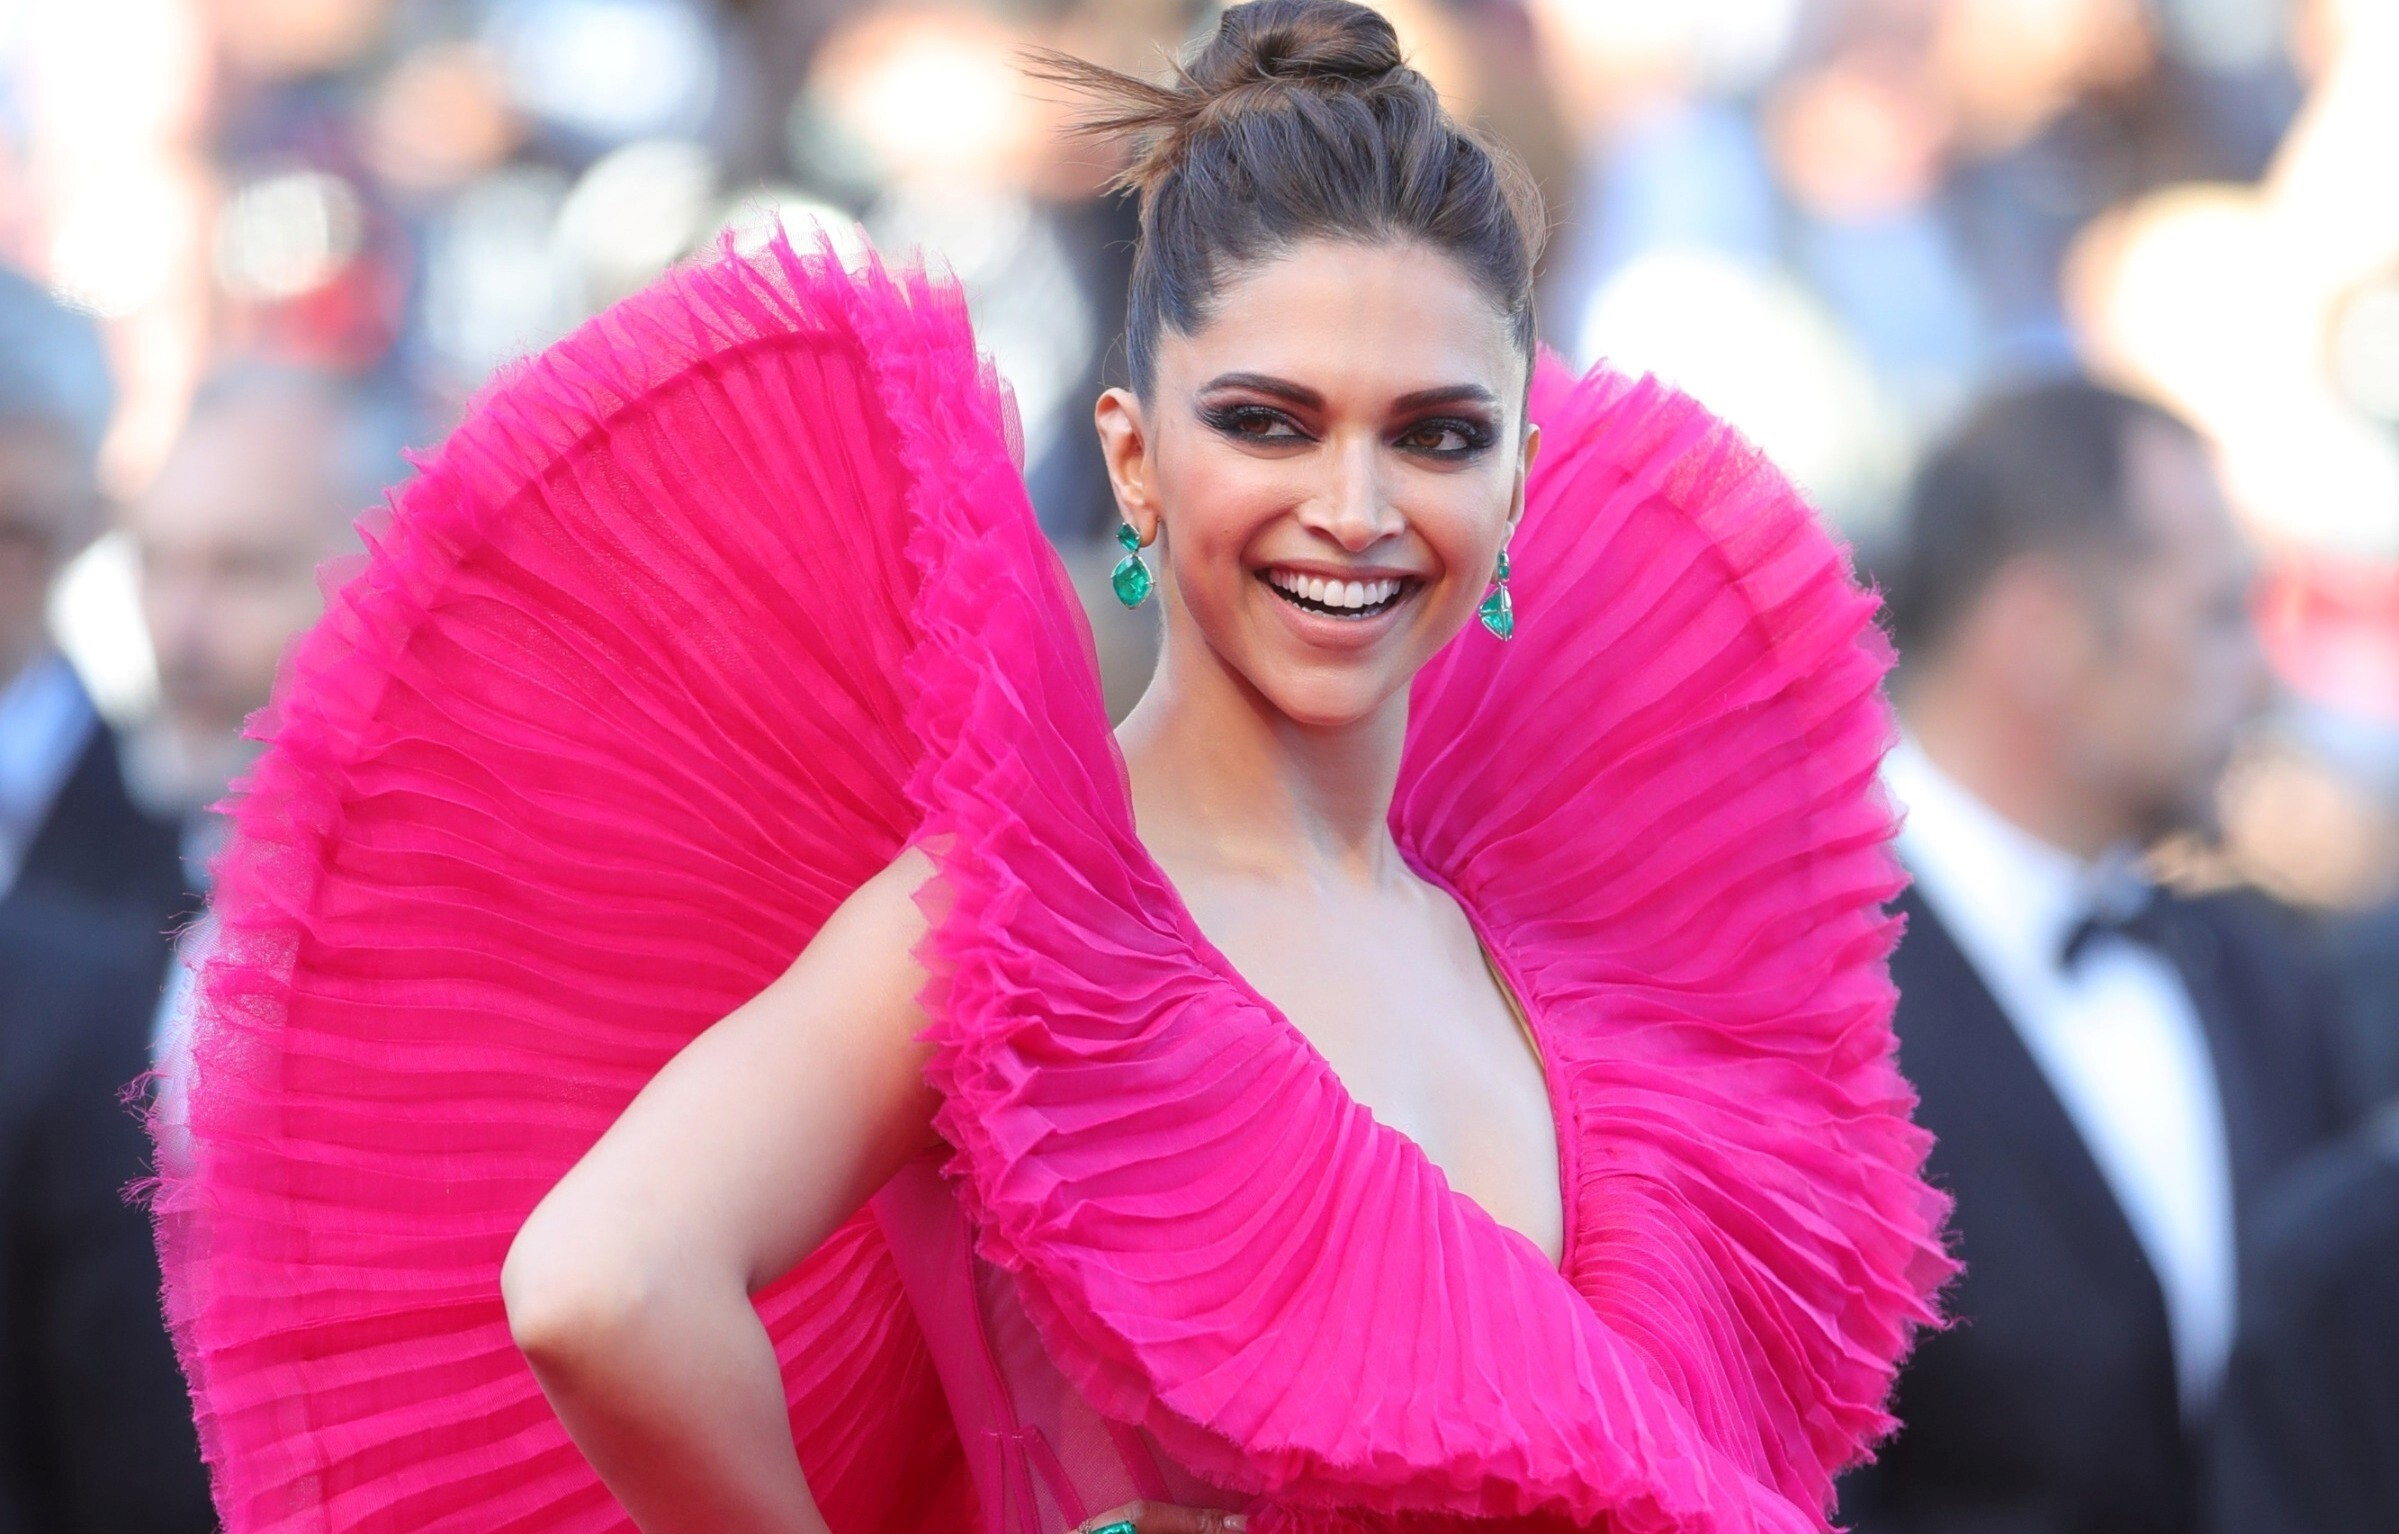 Deepika Padukone in Pink Dress Cannes Film Festival 2018 ...